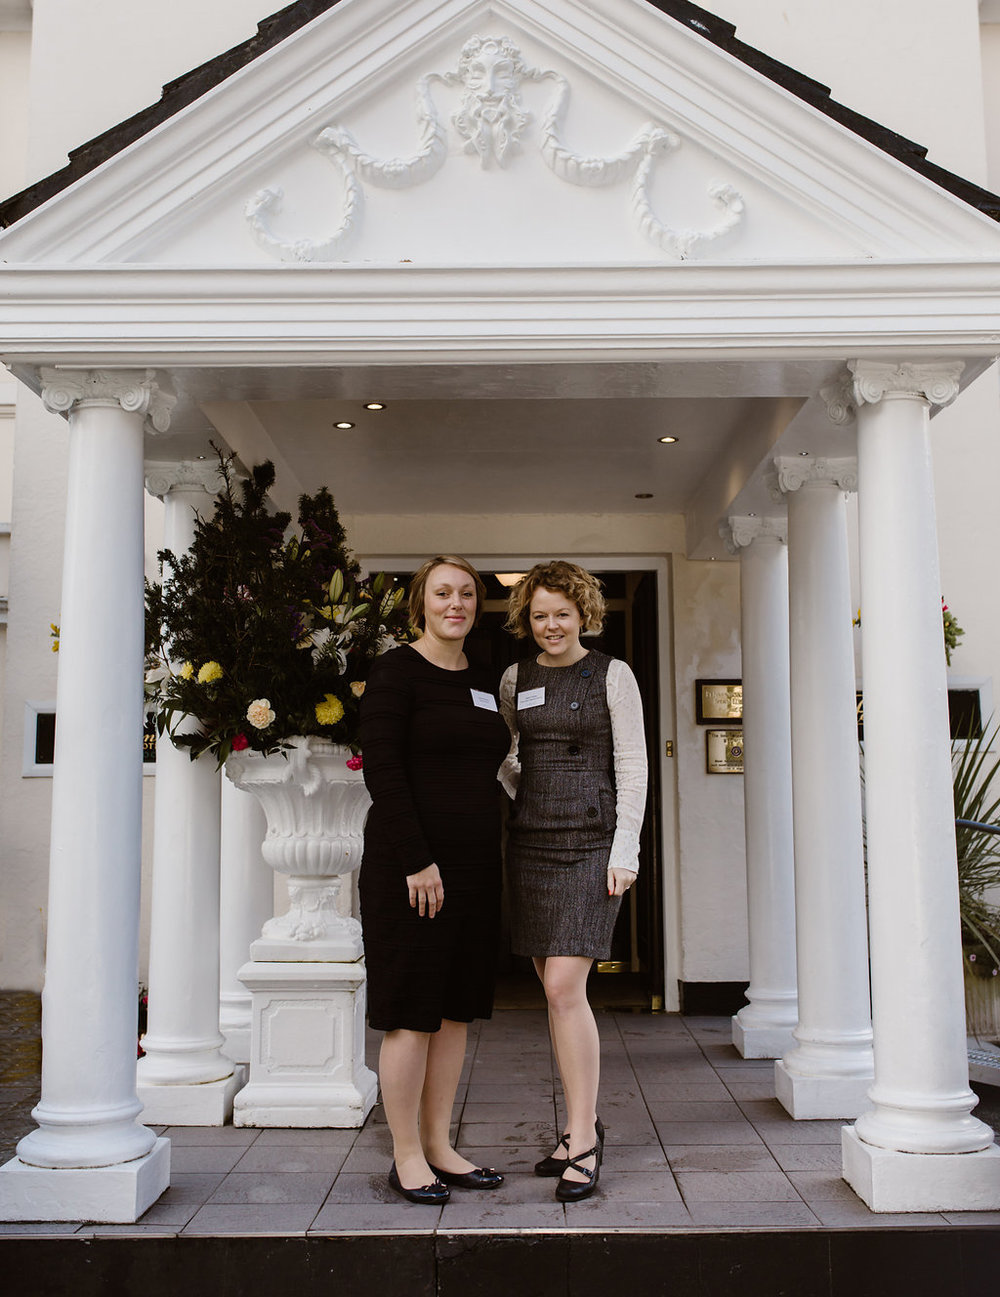 Hazel Parsons & Jenny Wren organisers of Cornwall Wed Meetup at The Penventon Park Hotel - Nov 16 - Image Echanted Brides.jpg